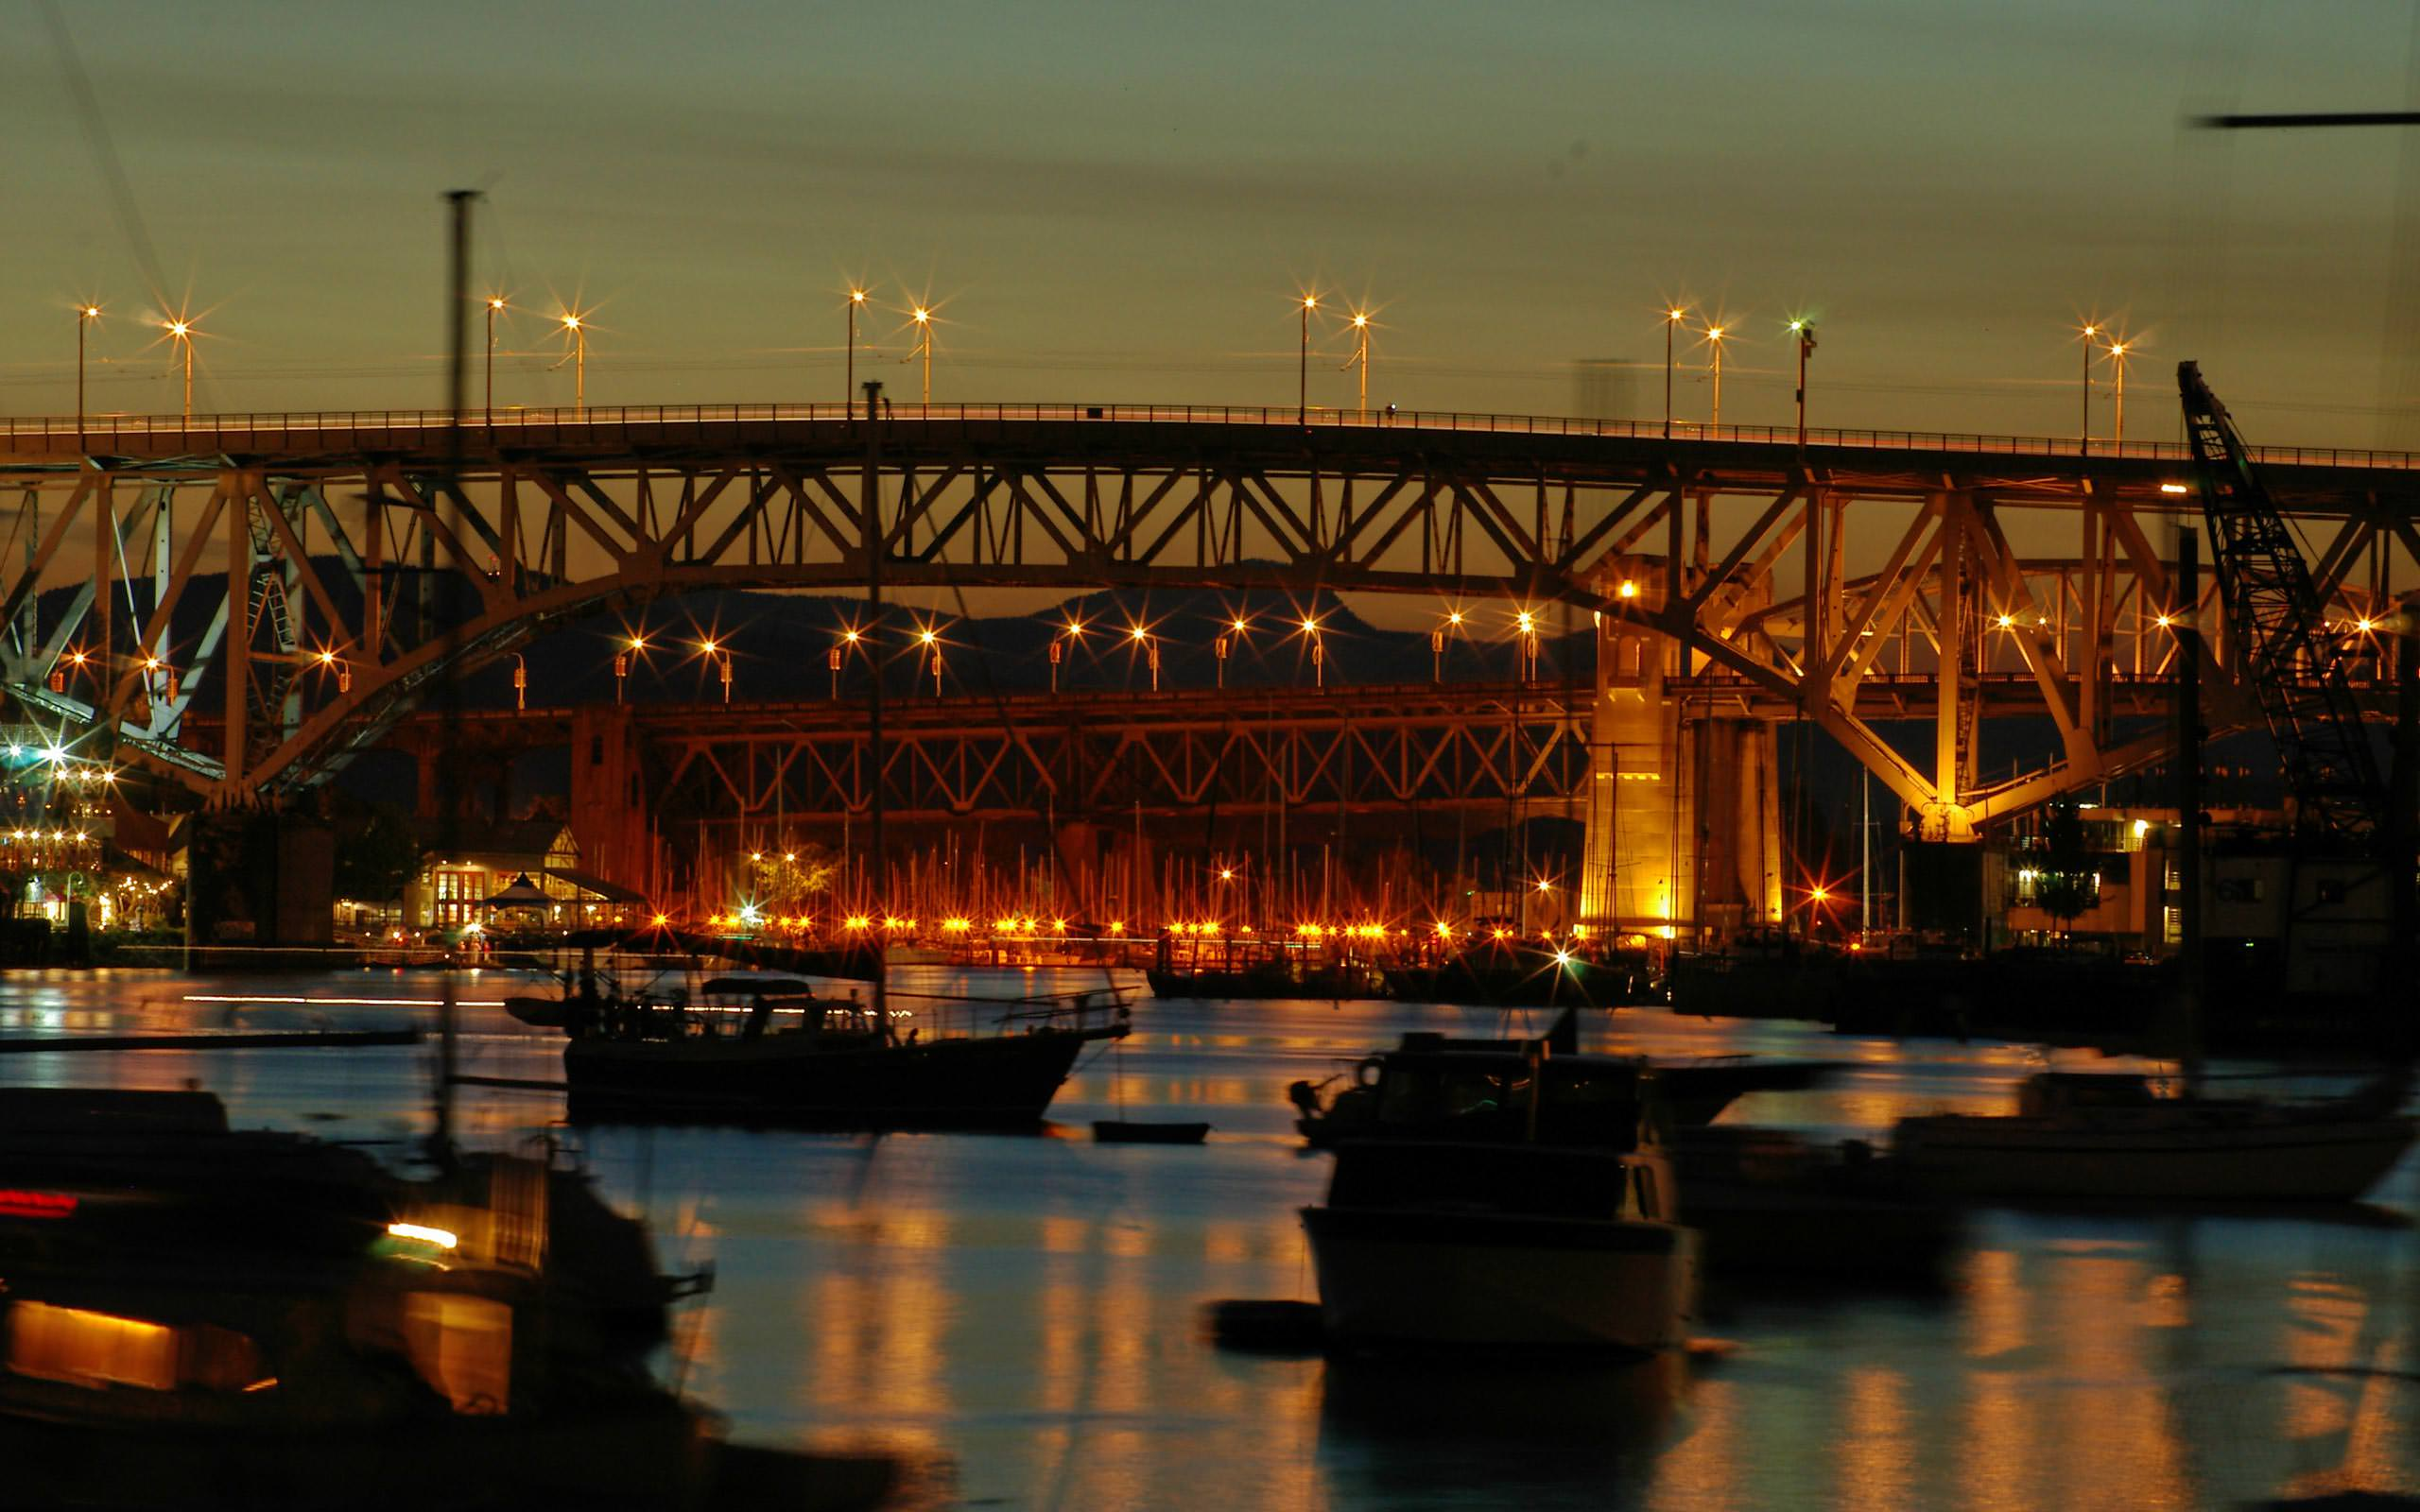 00289_bridgesatnight_2560x1600